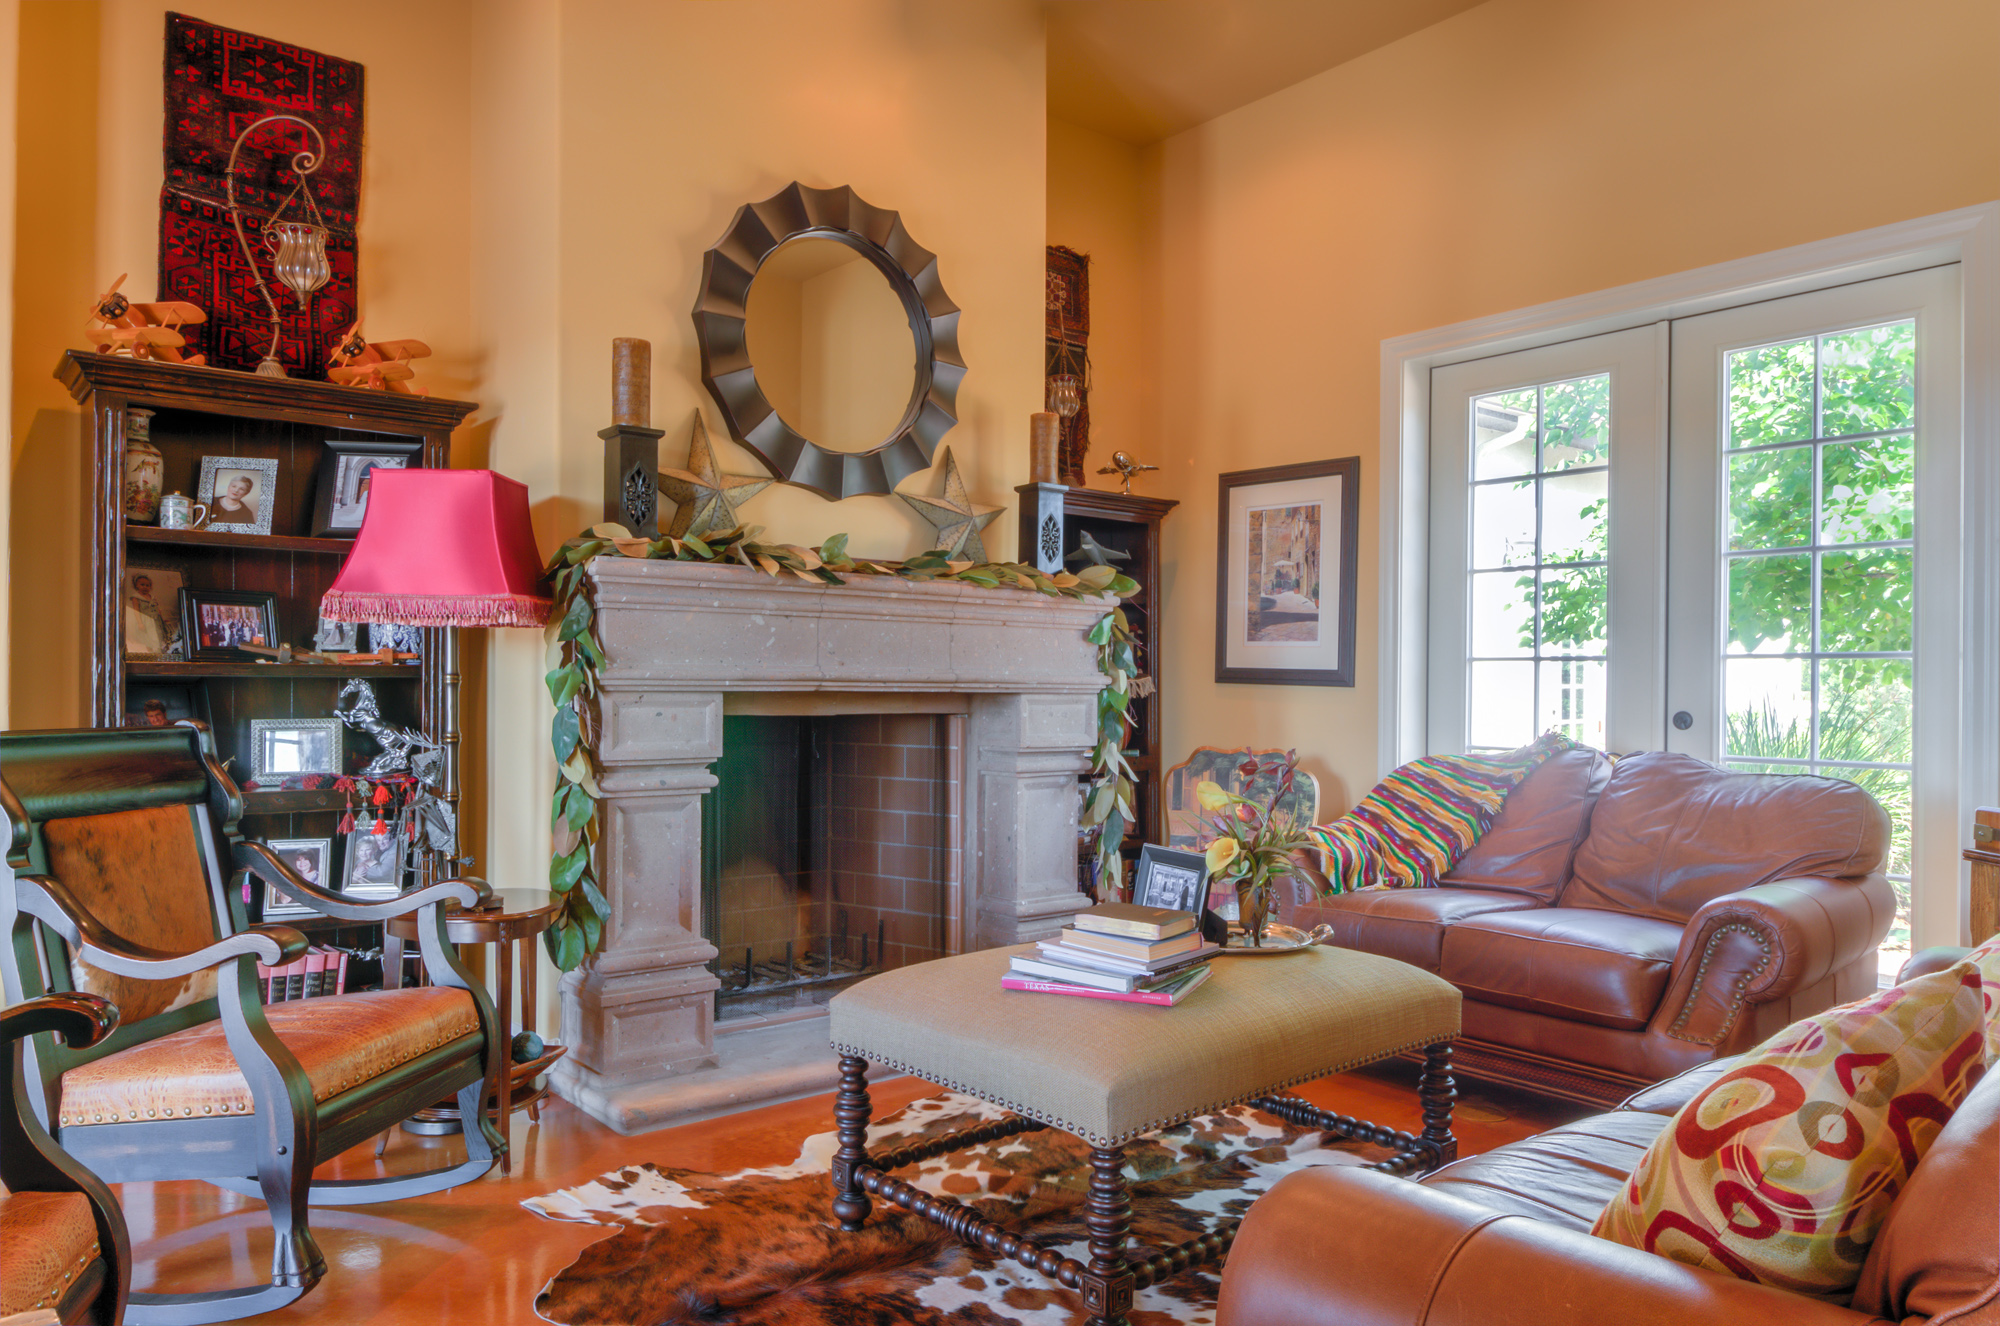 Best custom home builder in san antonio - One Of The Best Things About Working With A Custom Home Builder Like Stone Creek Custom Homes Is That You Get To Choose Everything Yourself With Our Help